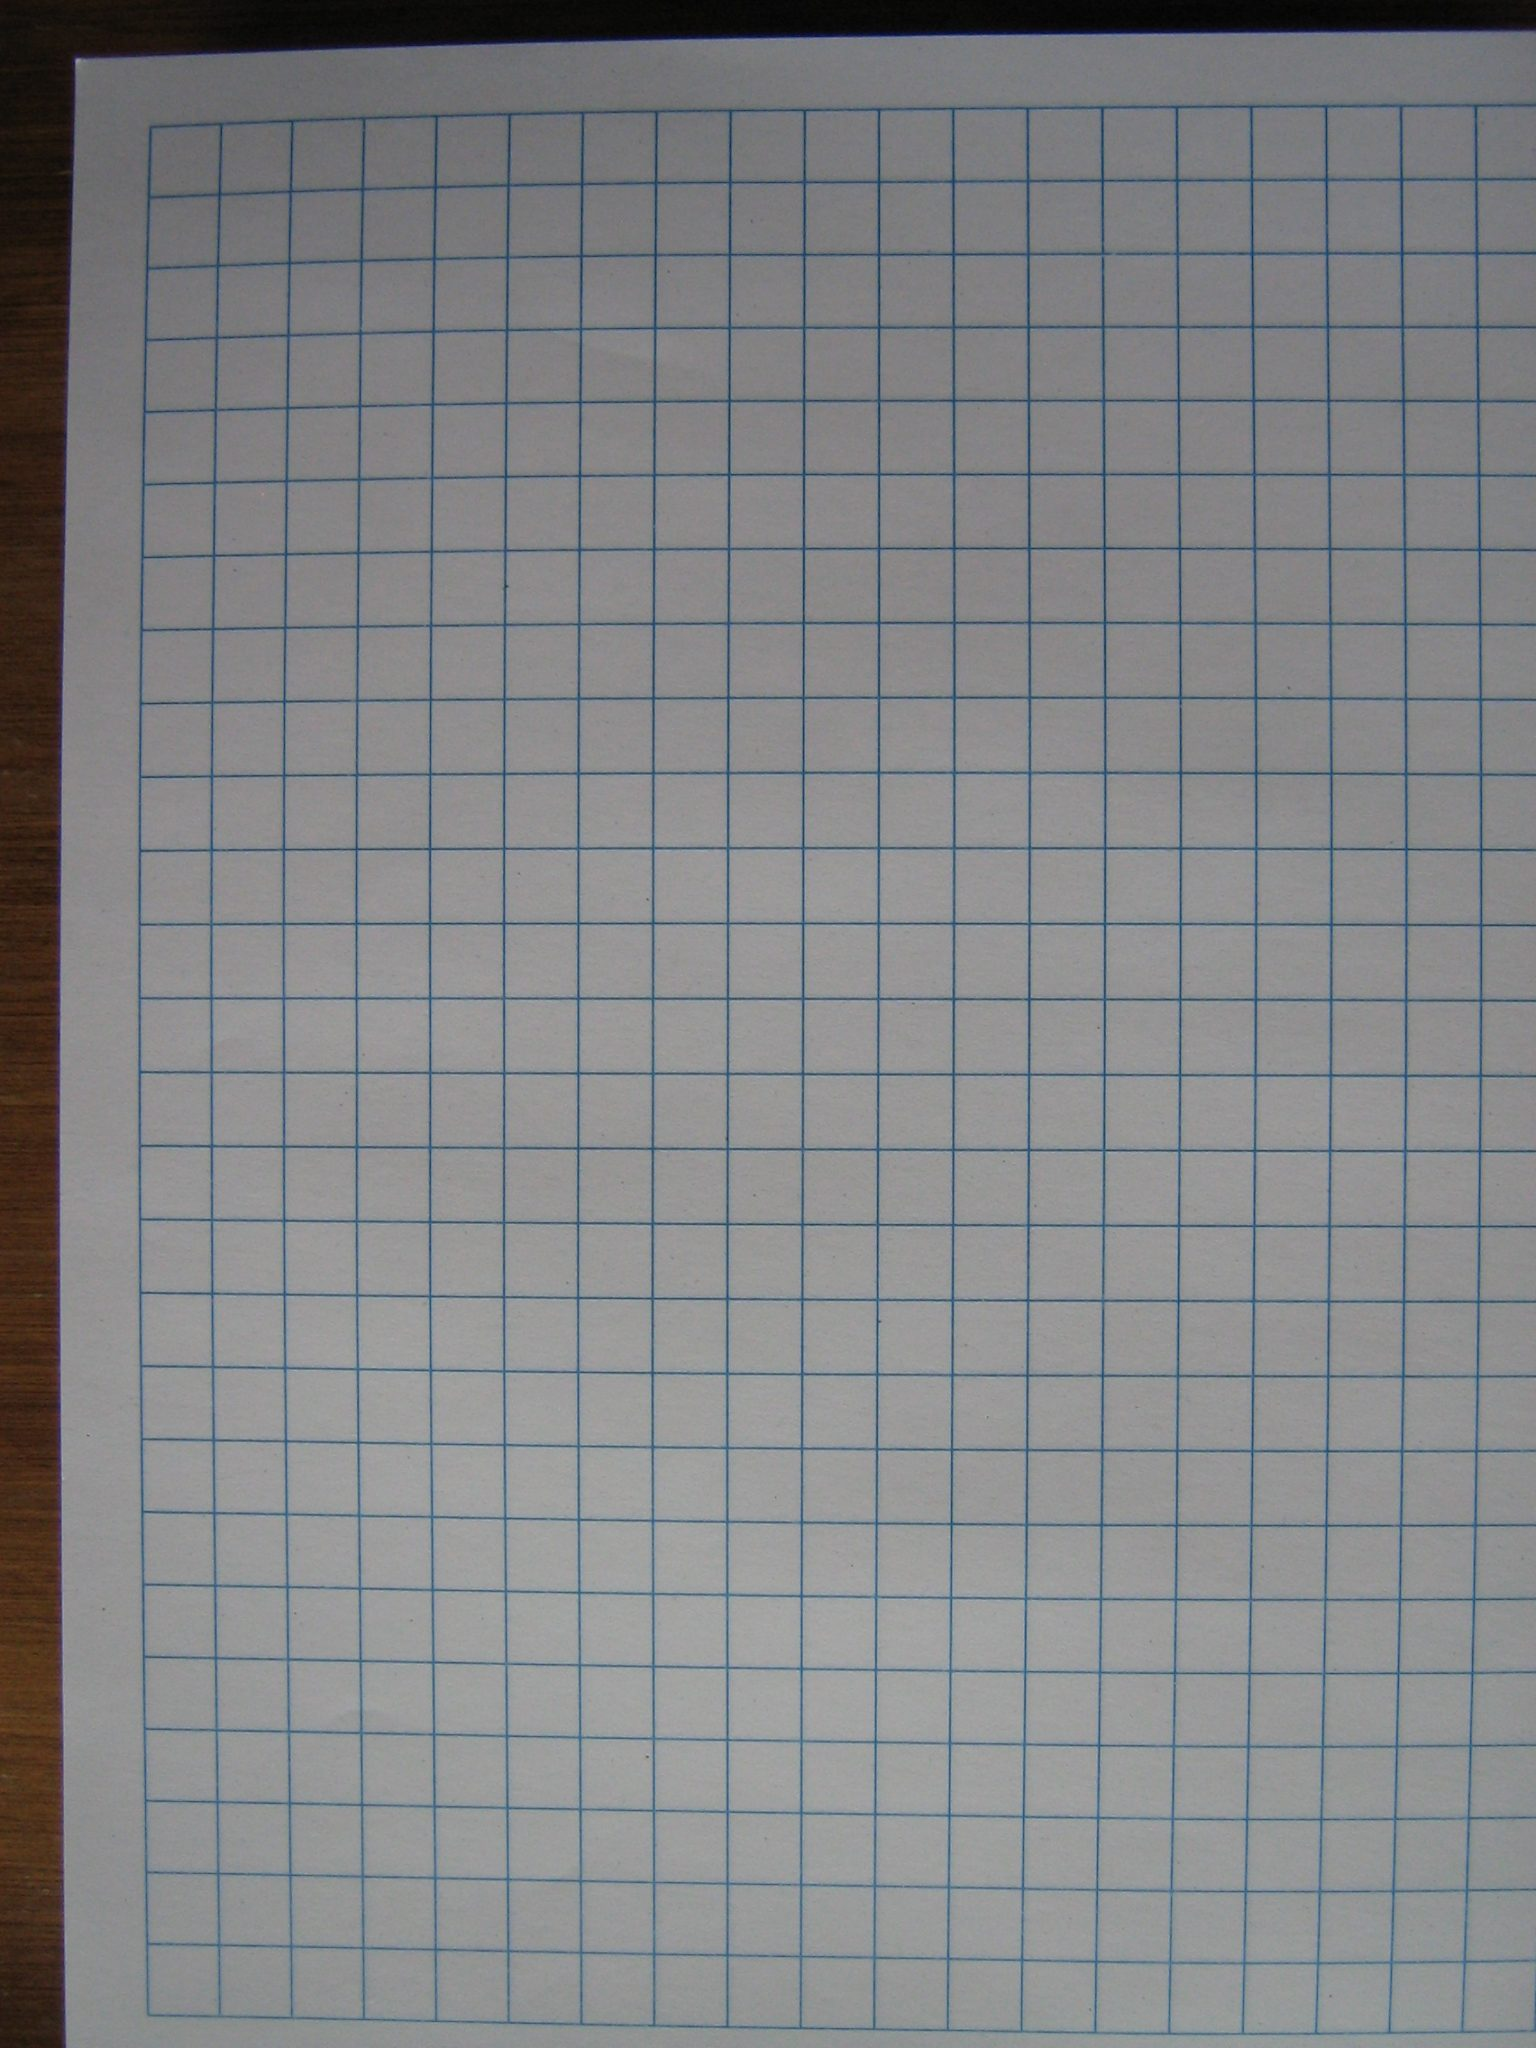 graph paper template 8 5 x 11 - Kardas.klmphotography.co